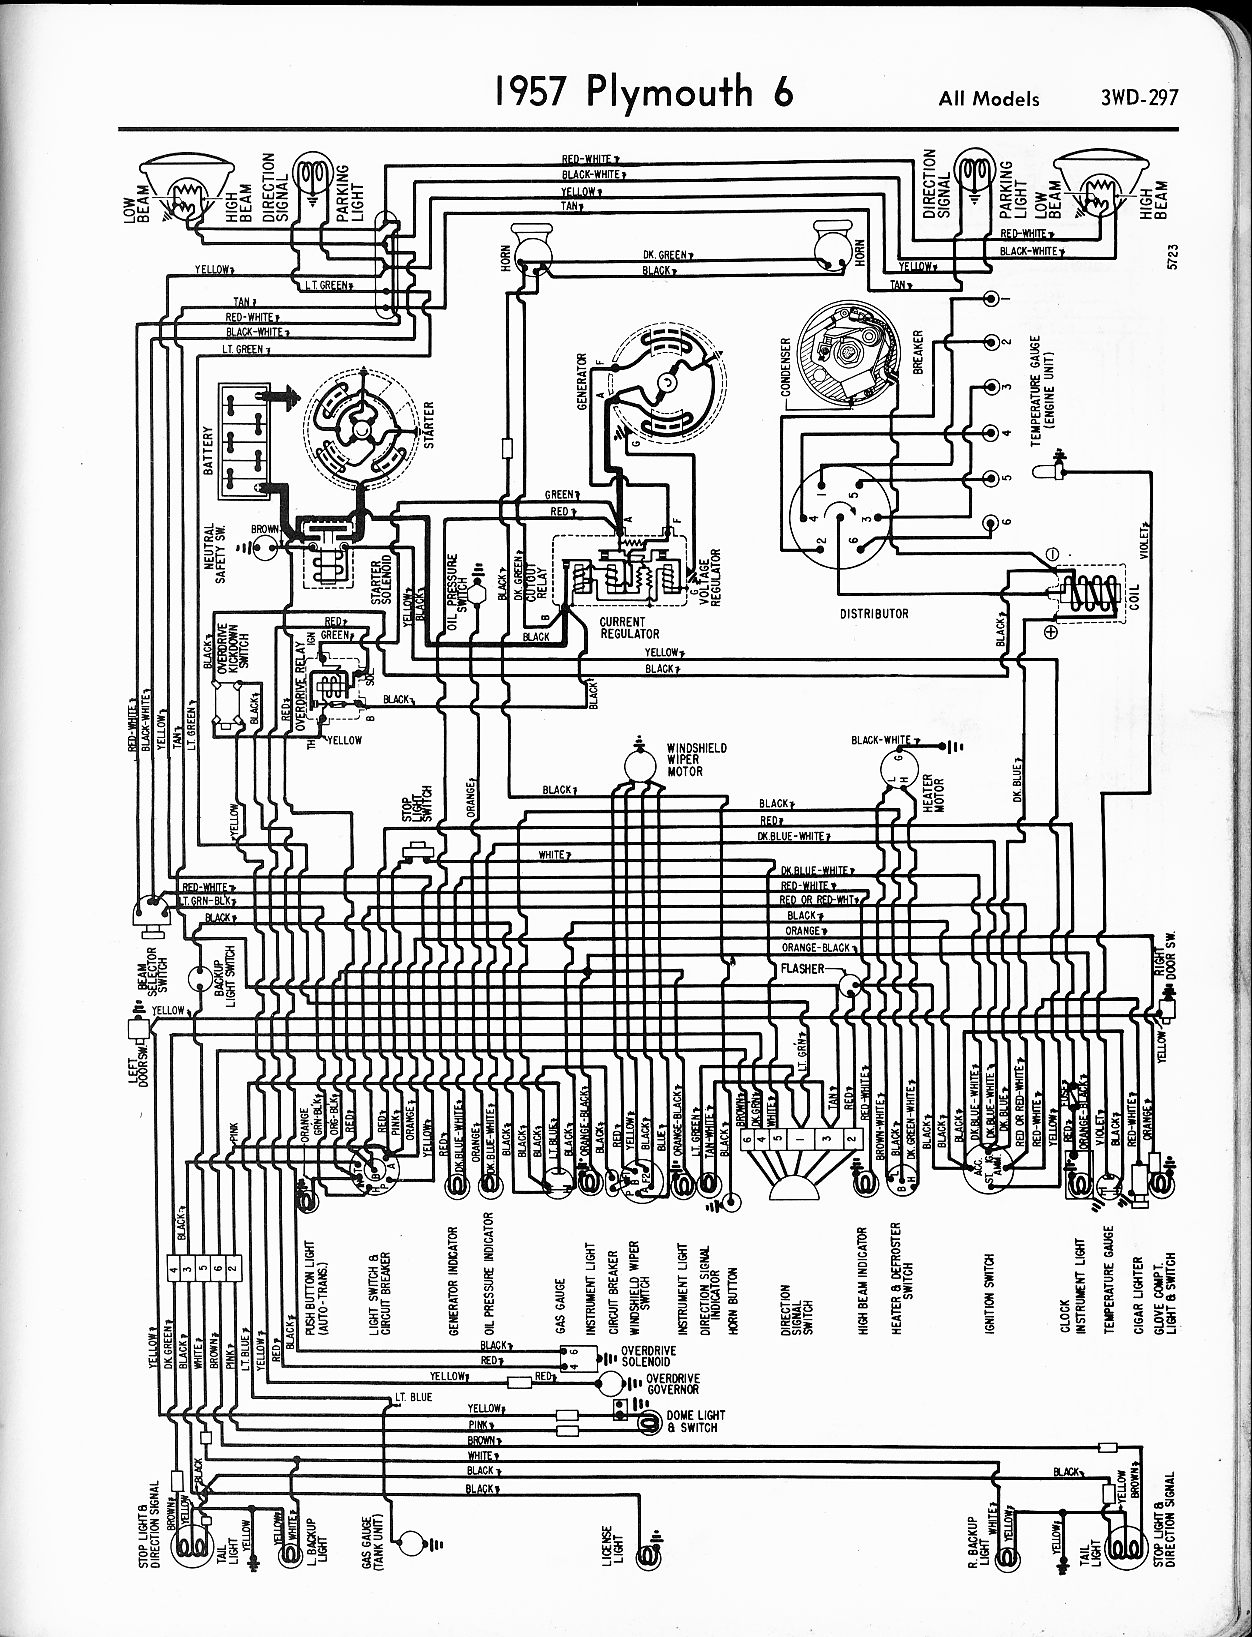 73 Plymouth Wiring Diagram